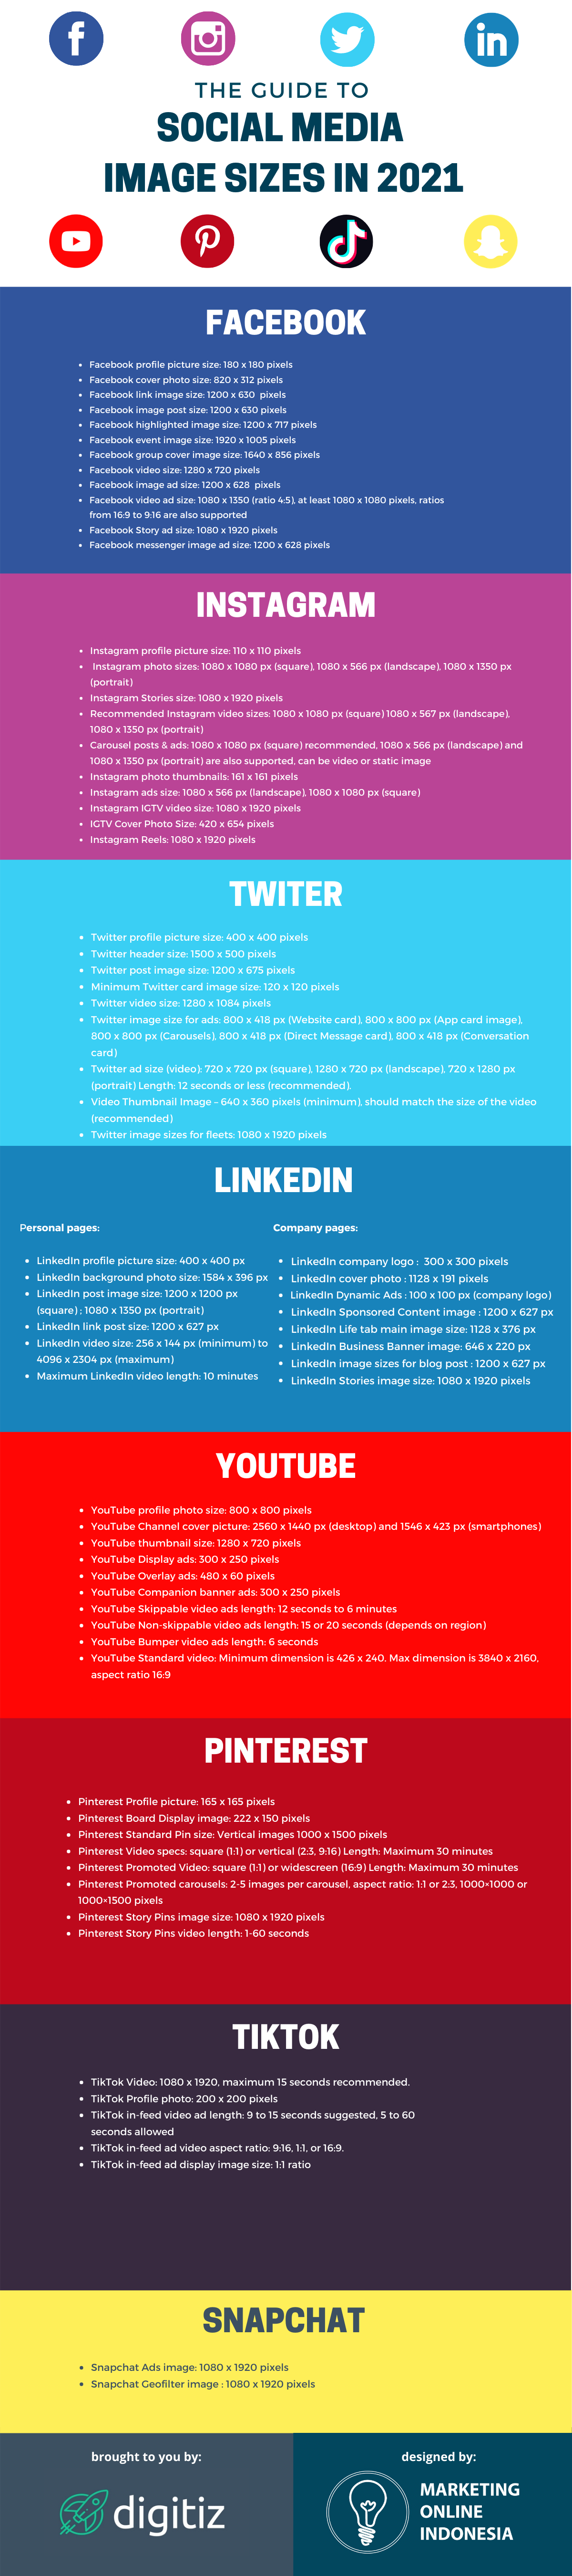 The Guide to Social Media Image Sizes in 2021